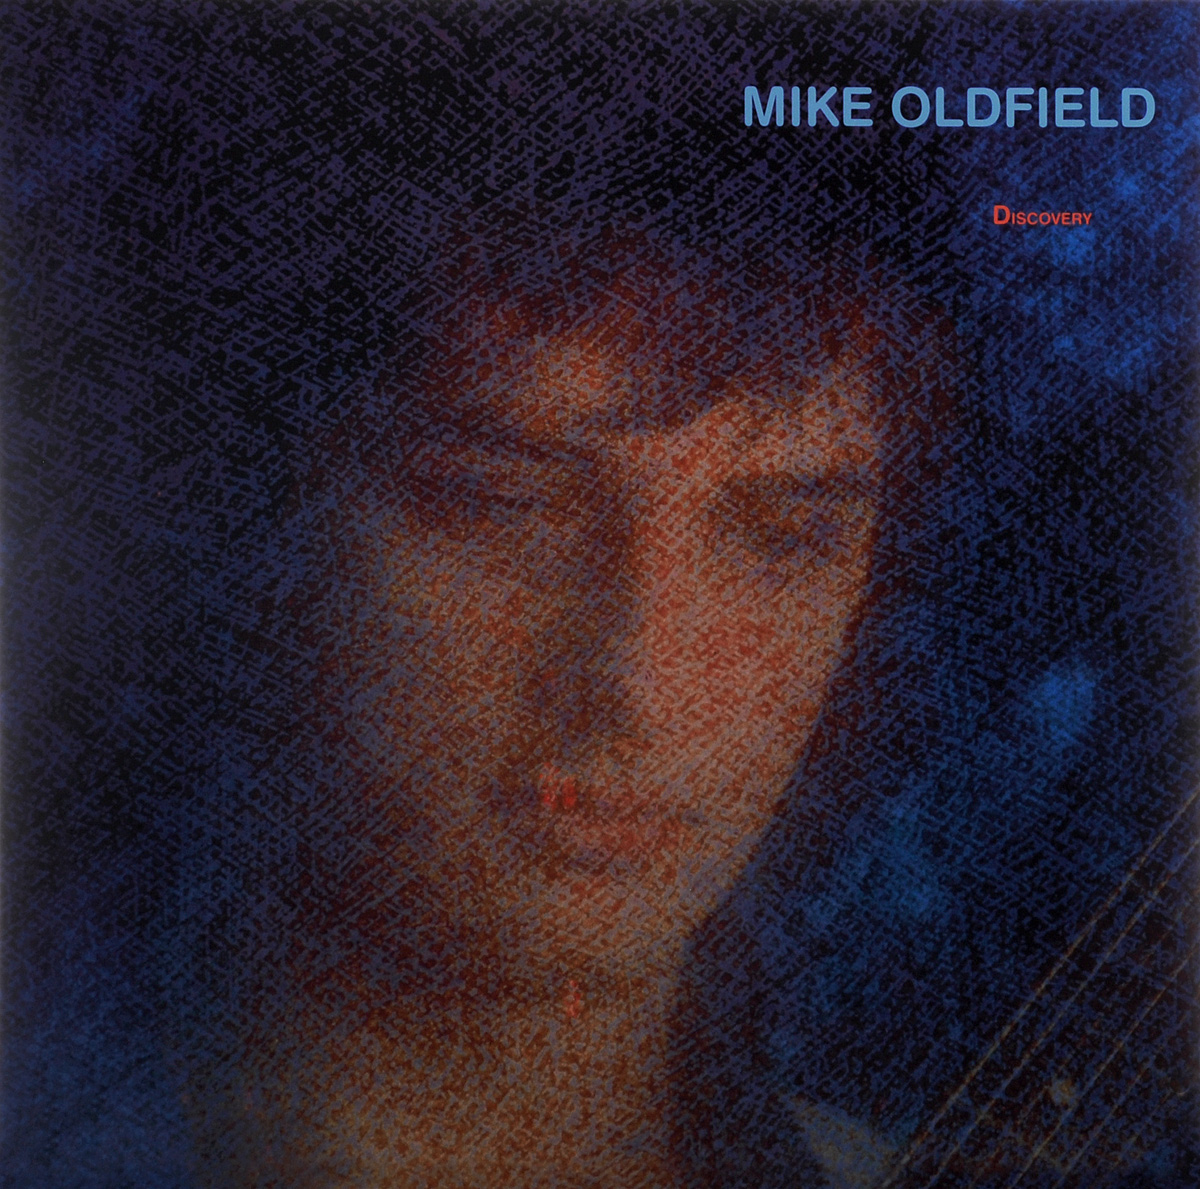 Майк Олдфилд Mike Oldfield. Discovery (LP) mike oldfield mike oldfield voyager